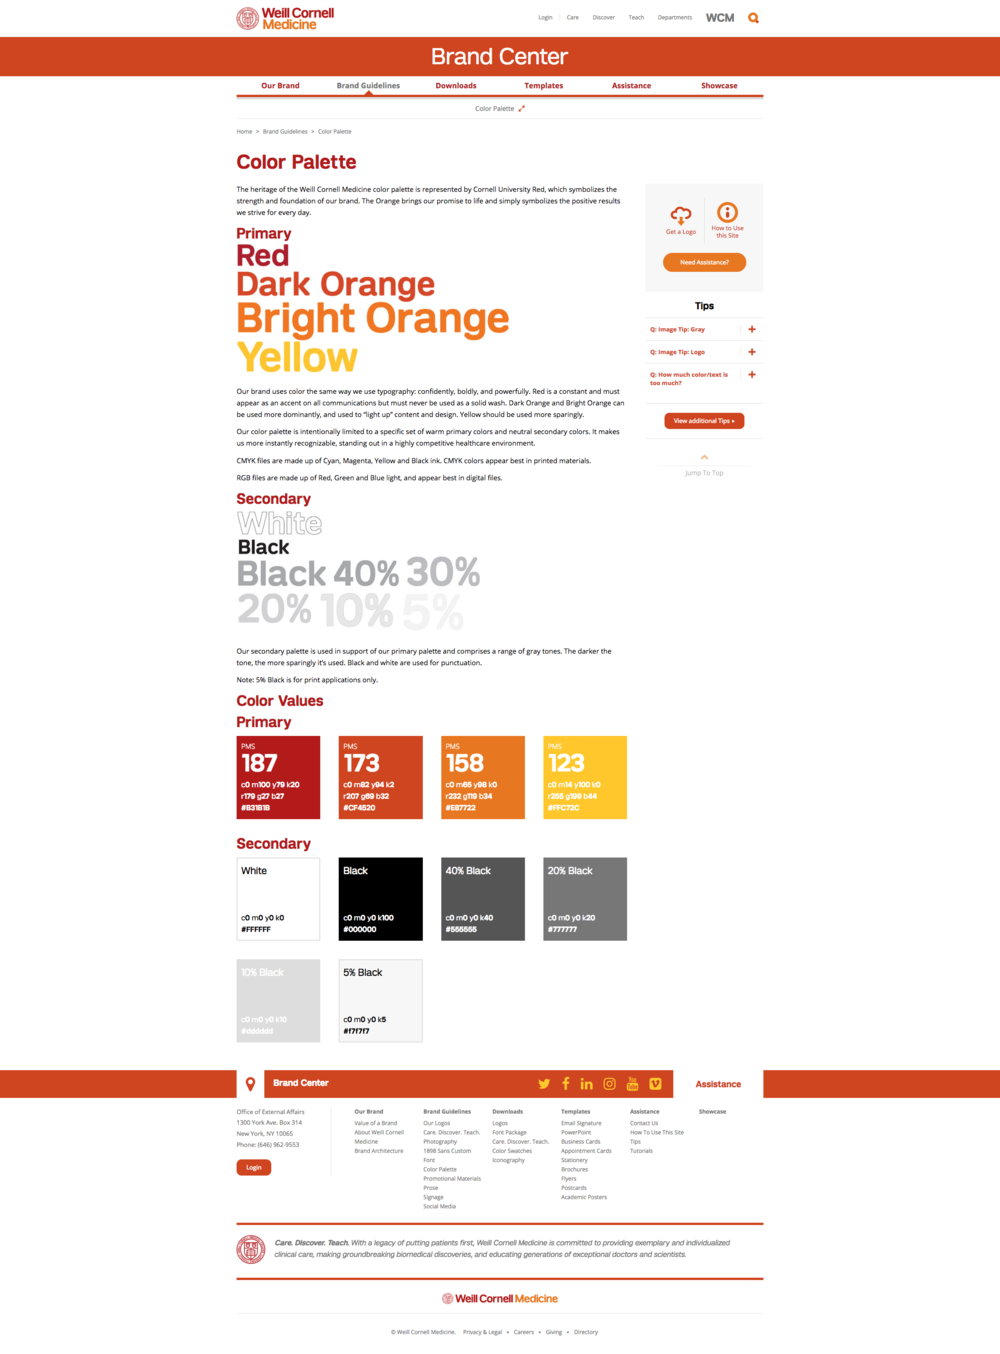 screencapture-brand-weill-cornell-edu-brand-guidelines-color-palette-1499390318602.png